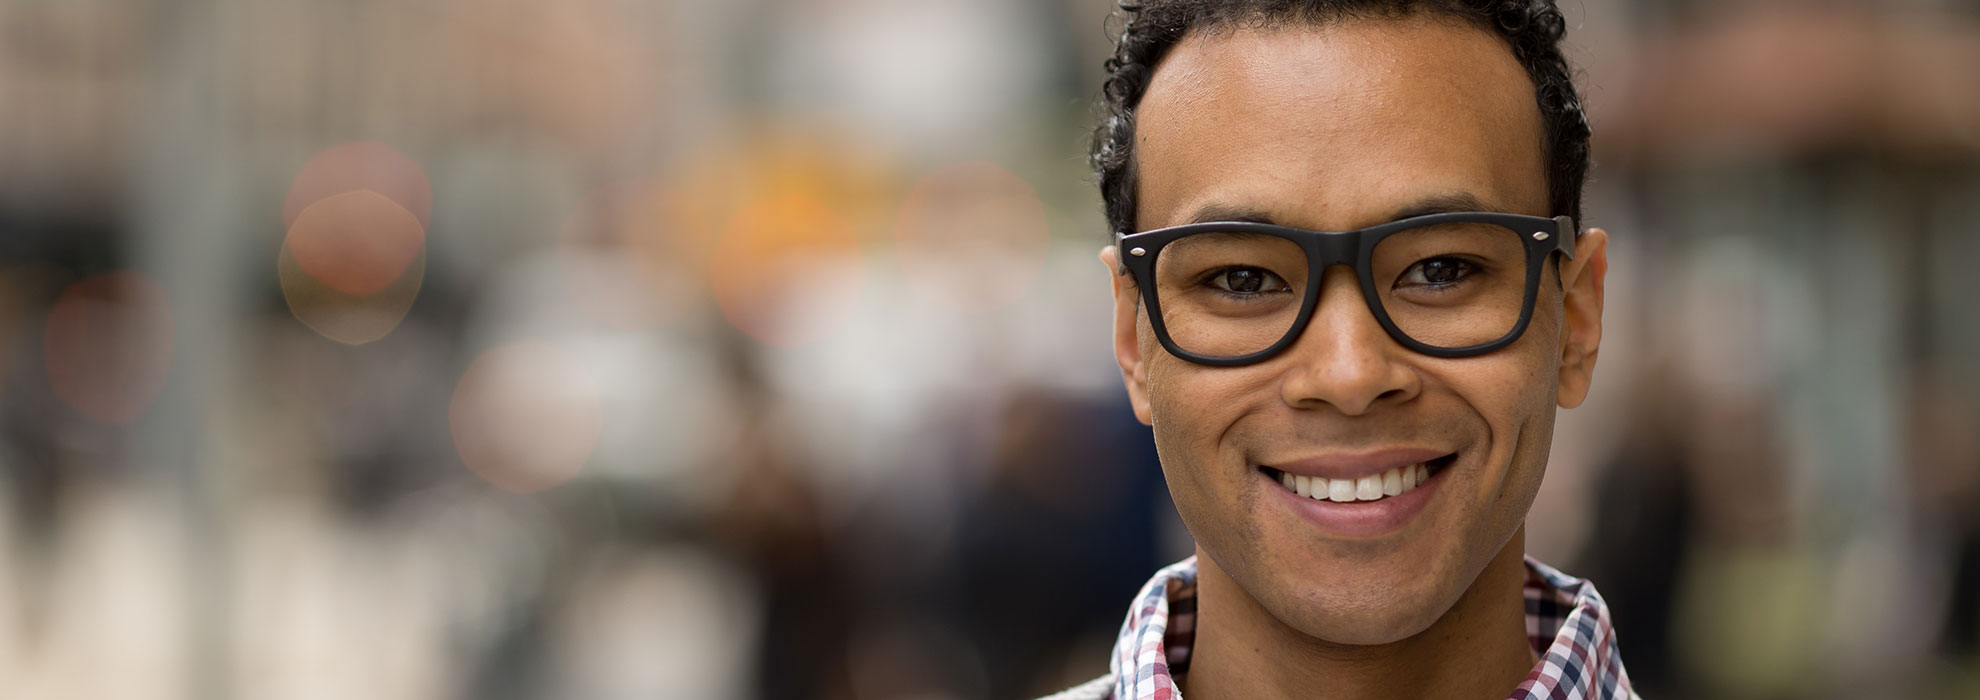 Black male smiling wearing thick glasses